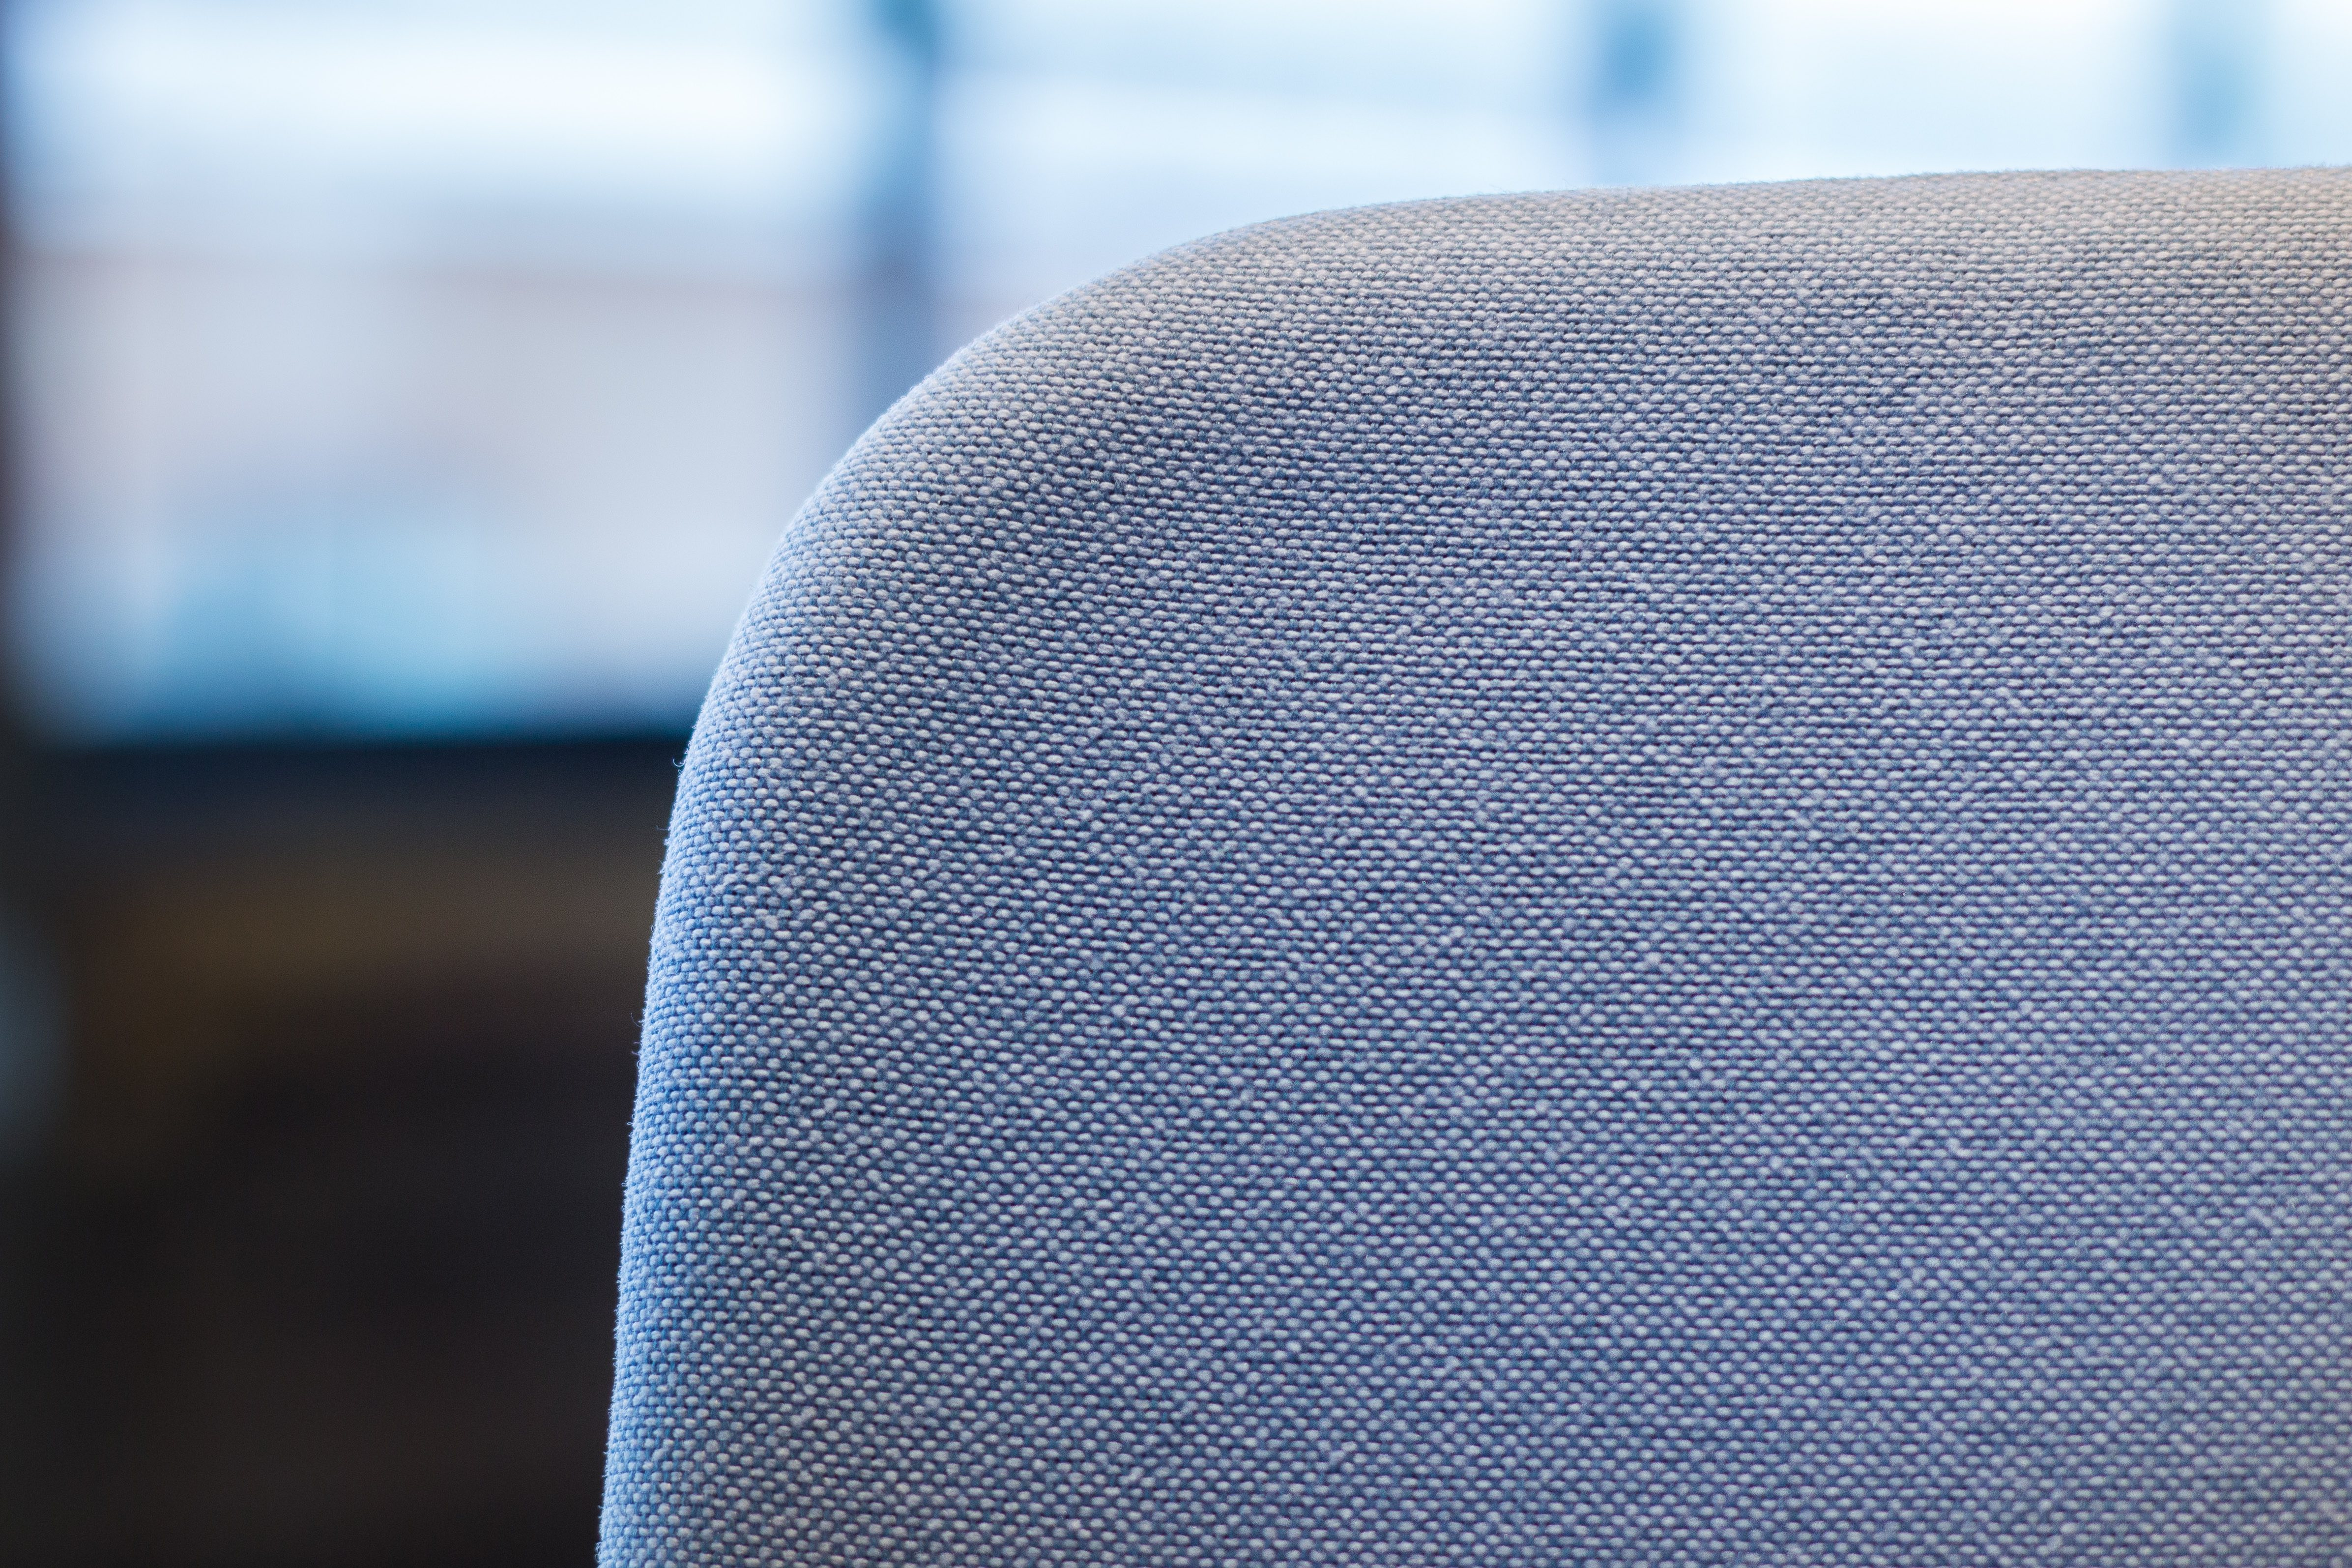 Review: Living with Vitra's Pacific Chair, Jony Ive's choice for